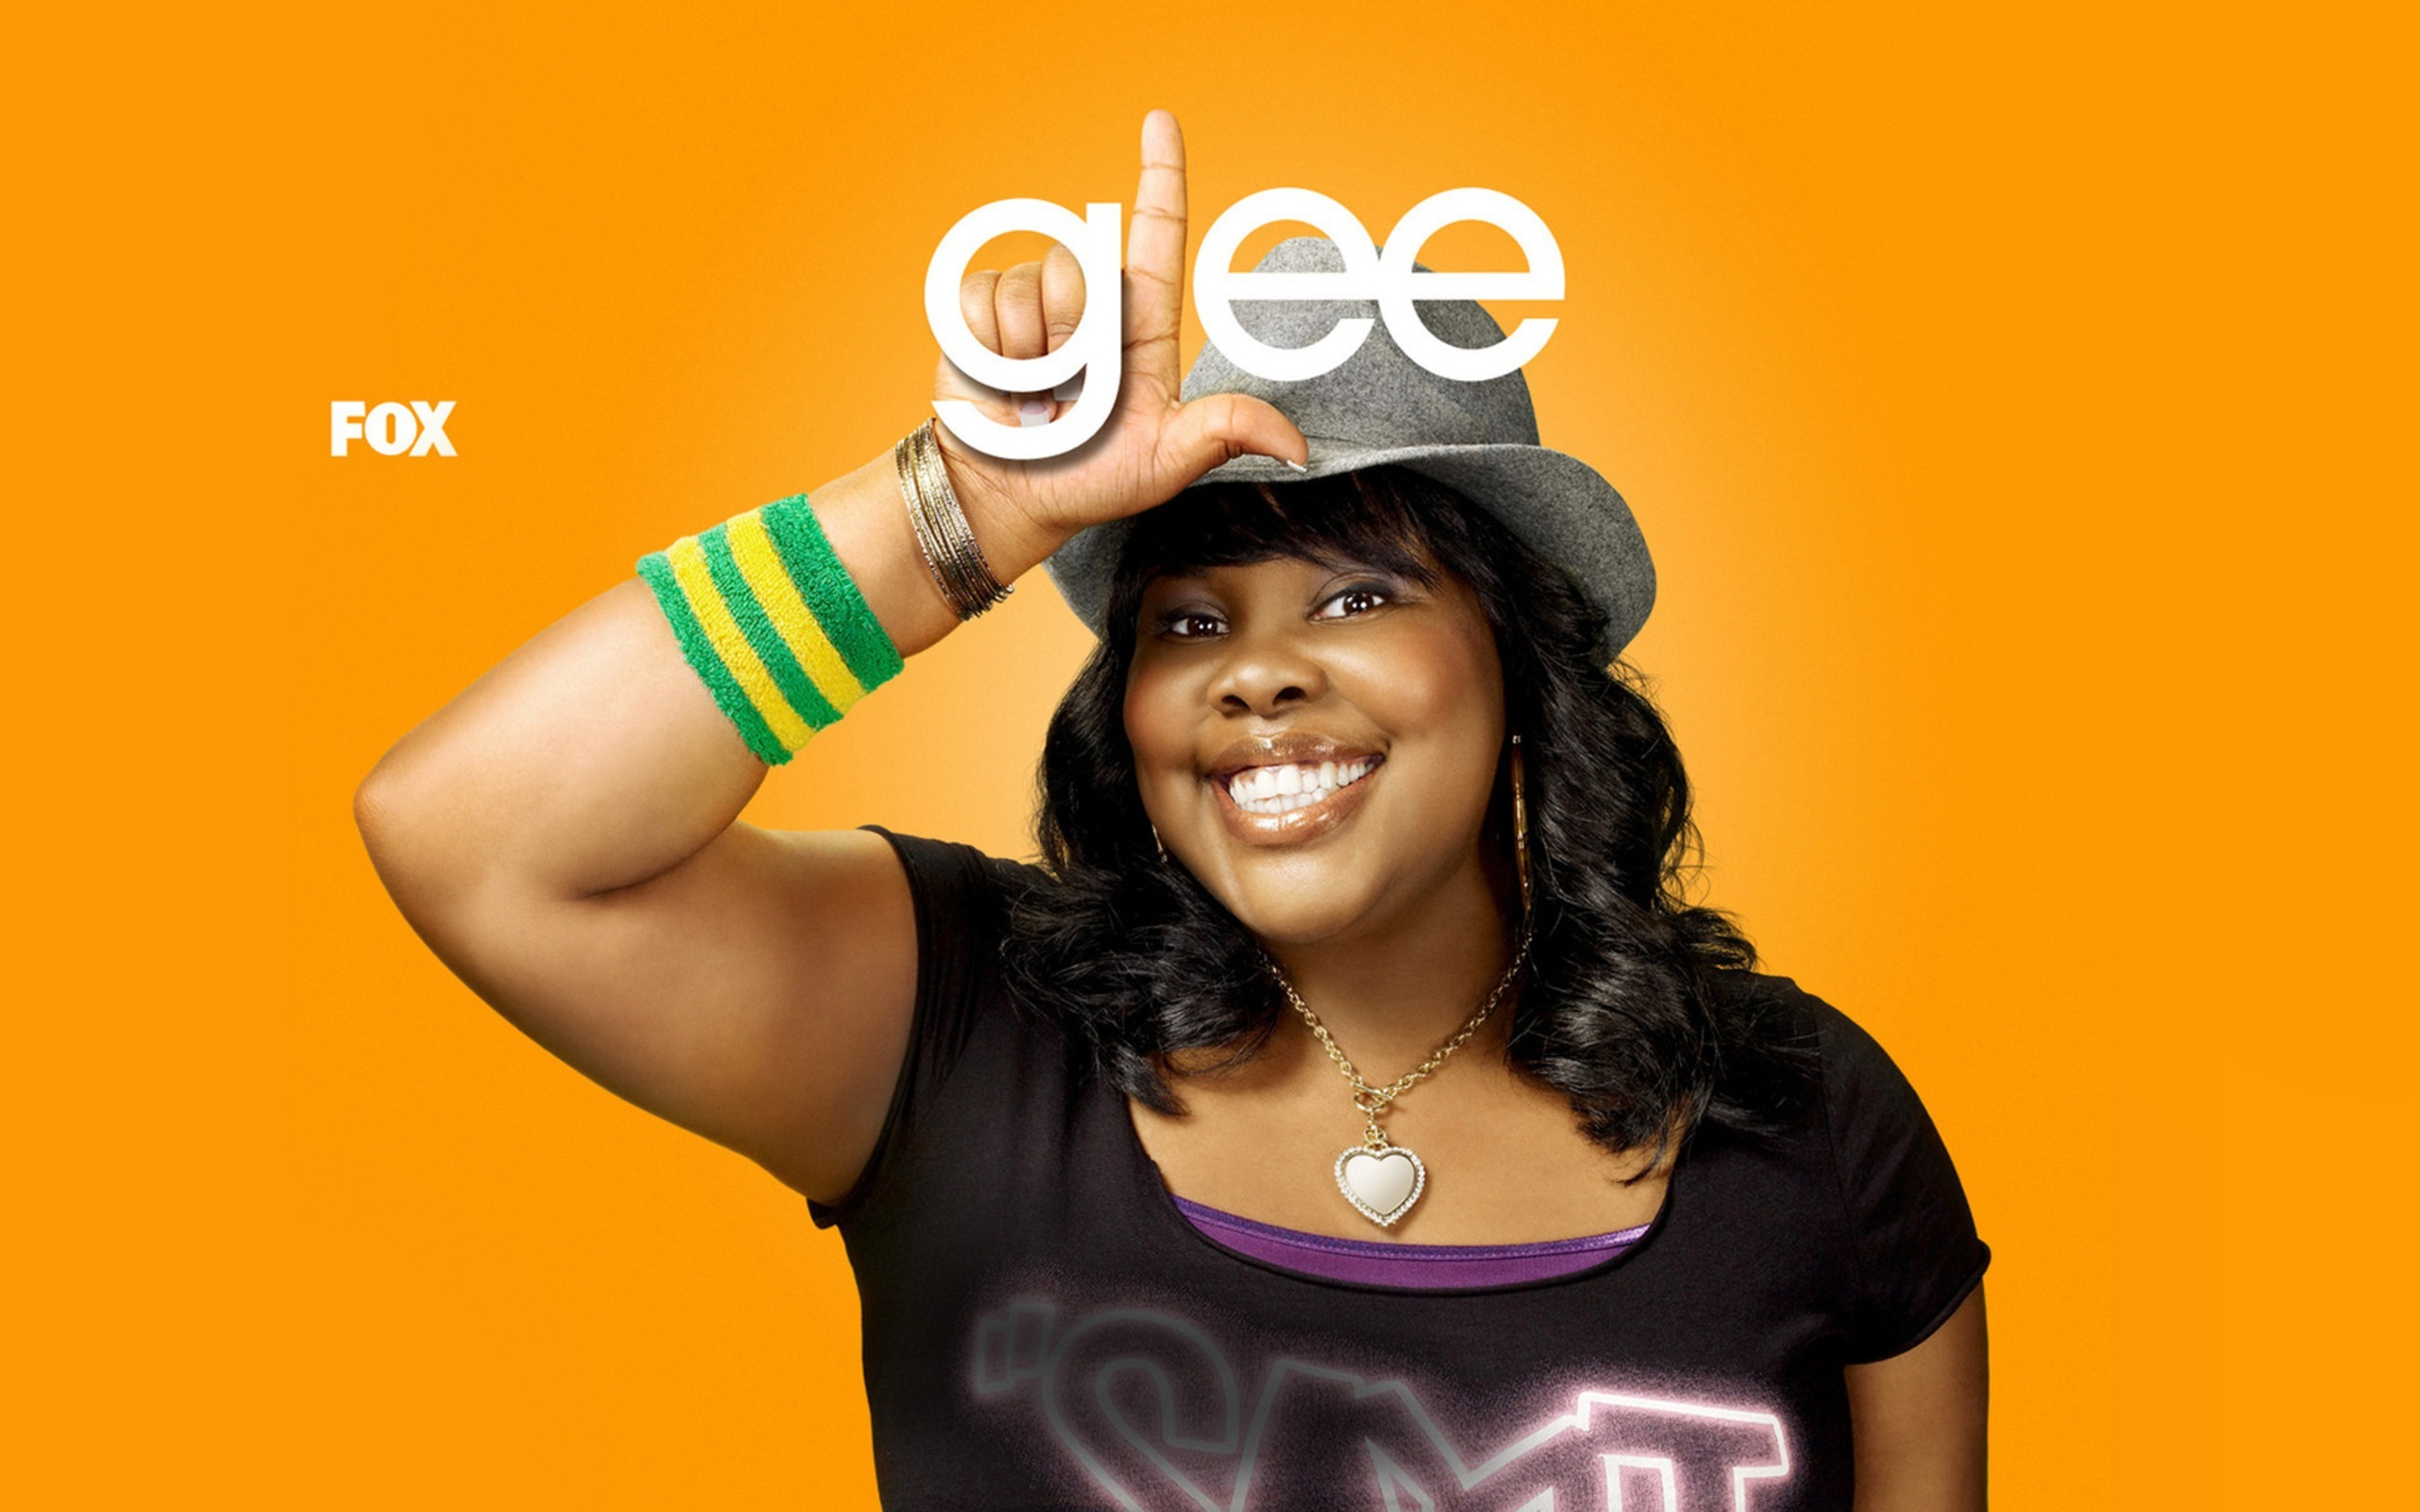 Glee wallpaper 11